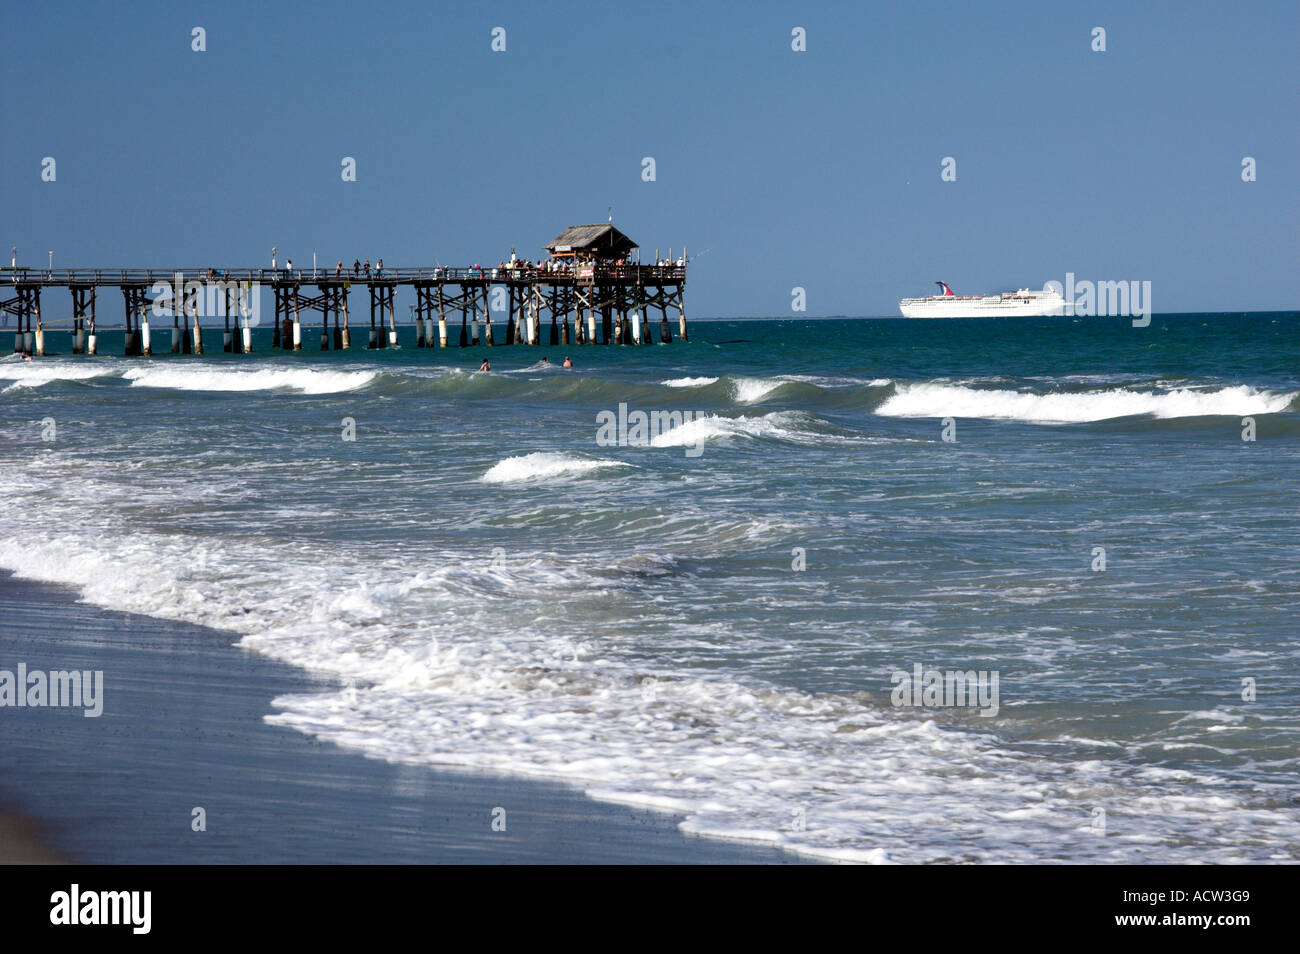 The cocoa beach florida pier with cruise ship and waves for Cocoa beach pier fishing